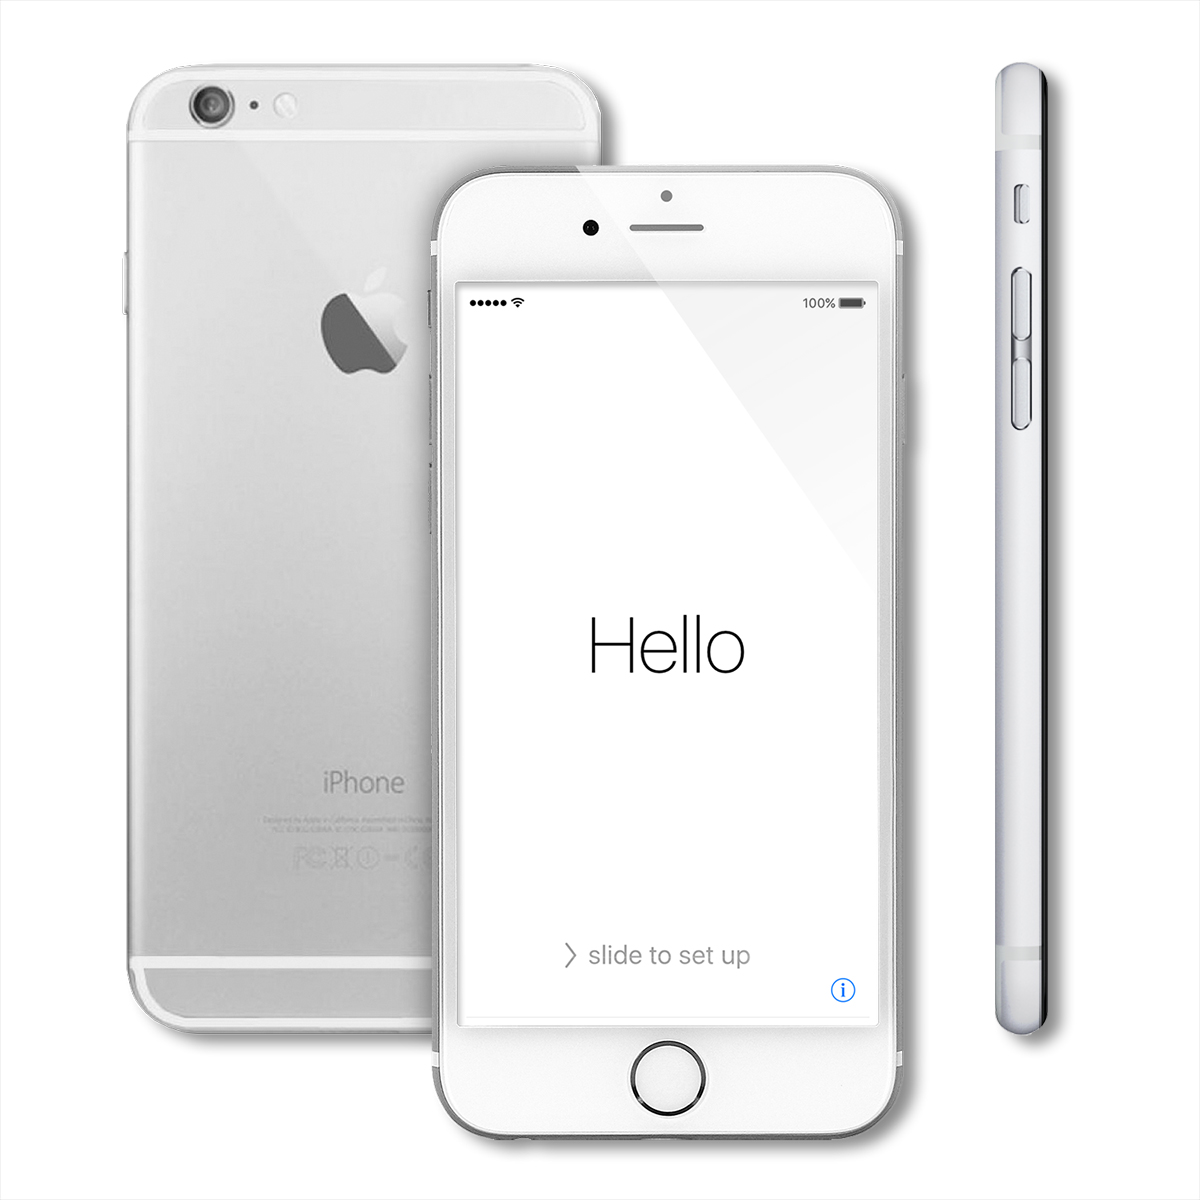 apple iphone 6 t mobile new apple iphone 6 128gb unlocked smartphone a1549 at amp t t 16586